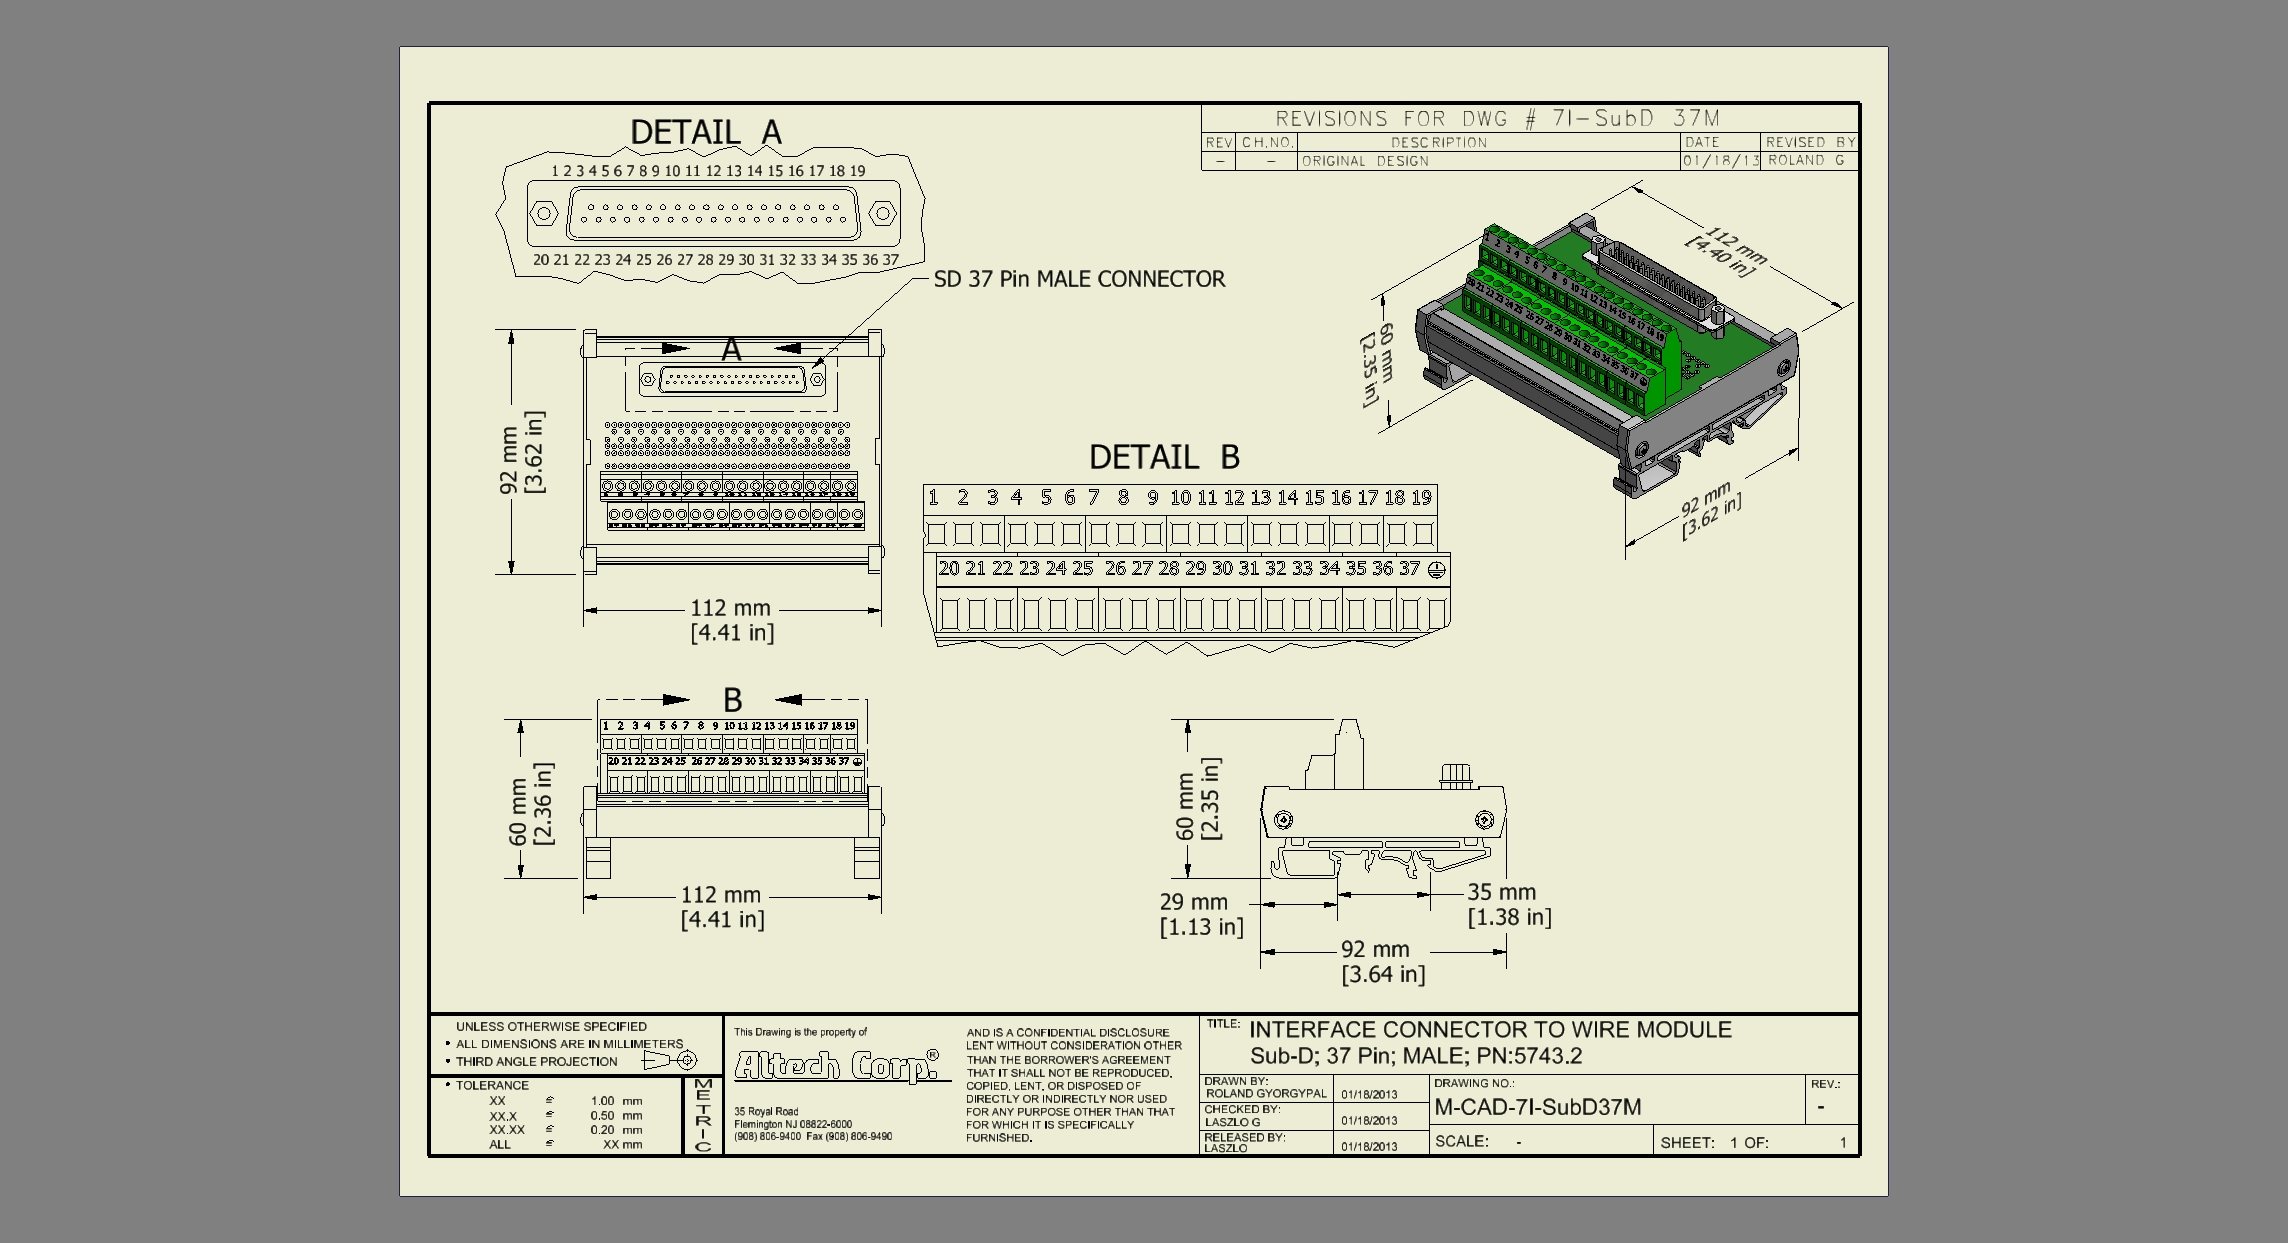 Custom Din Assemblies Assembly For Industrial Control One Stop Printed Circuit Board 37 Sub D Male